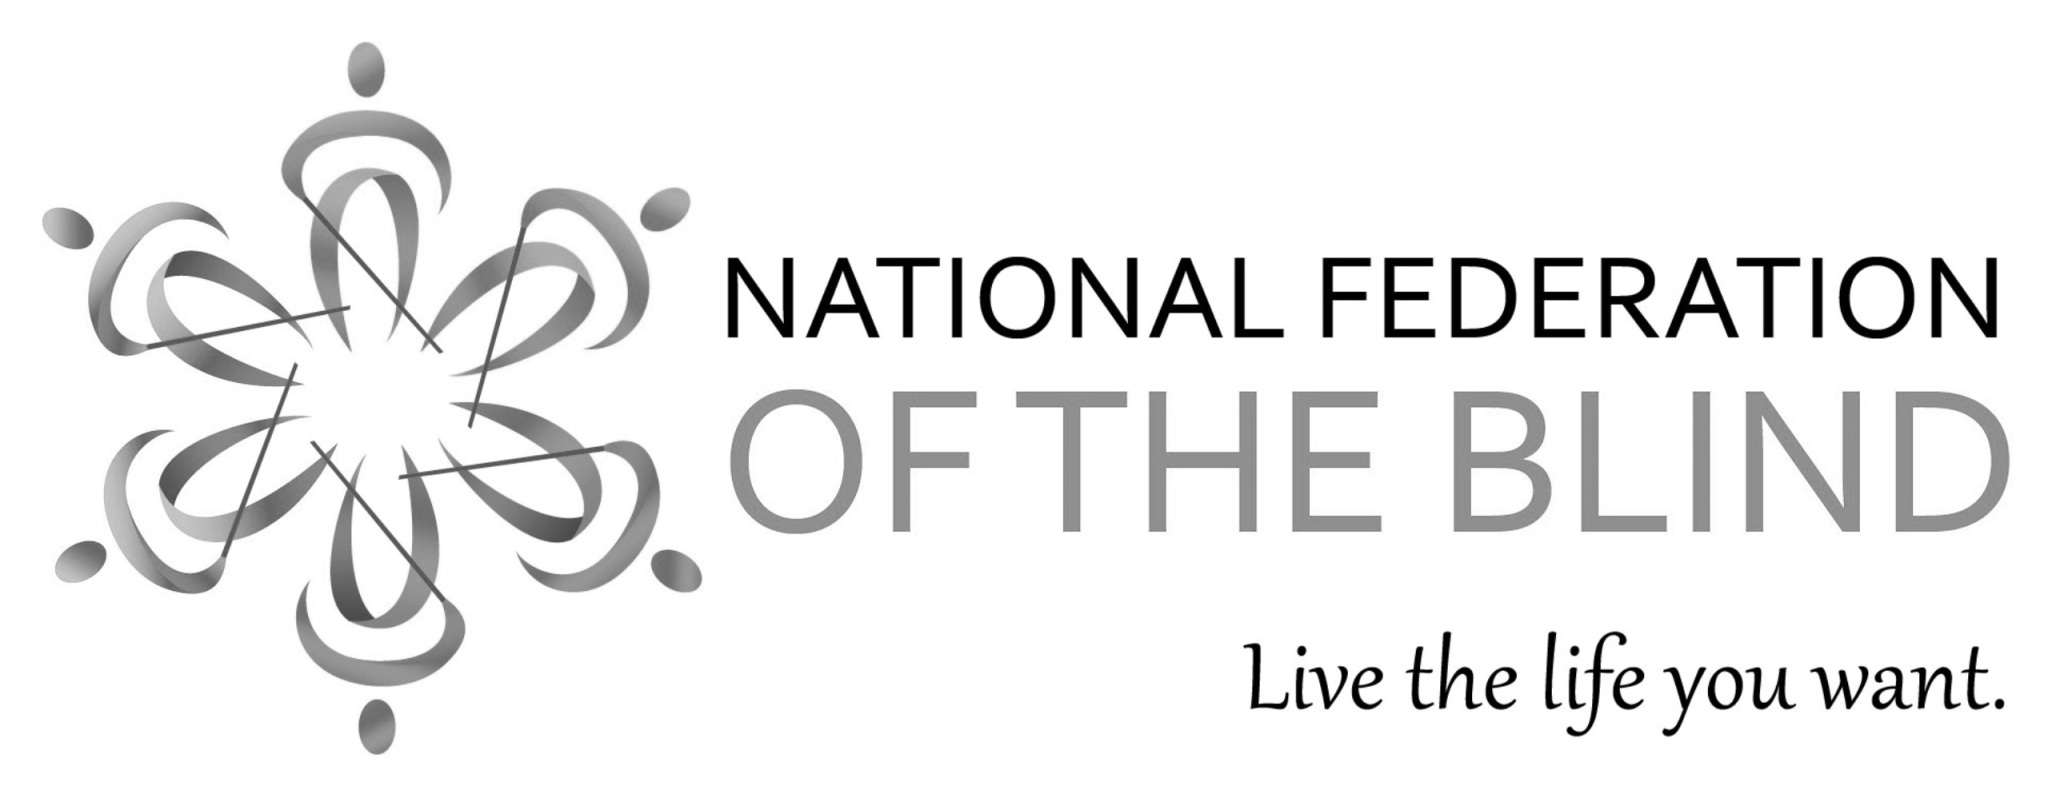 Copy of National Federation of the Blind